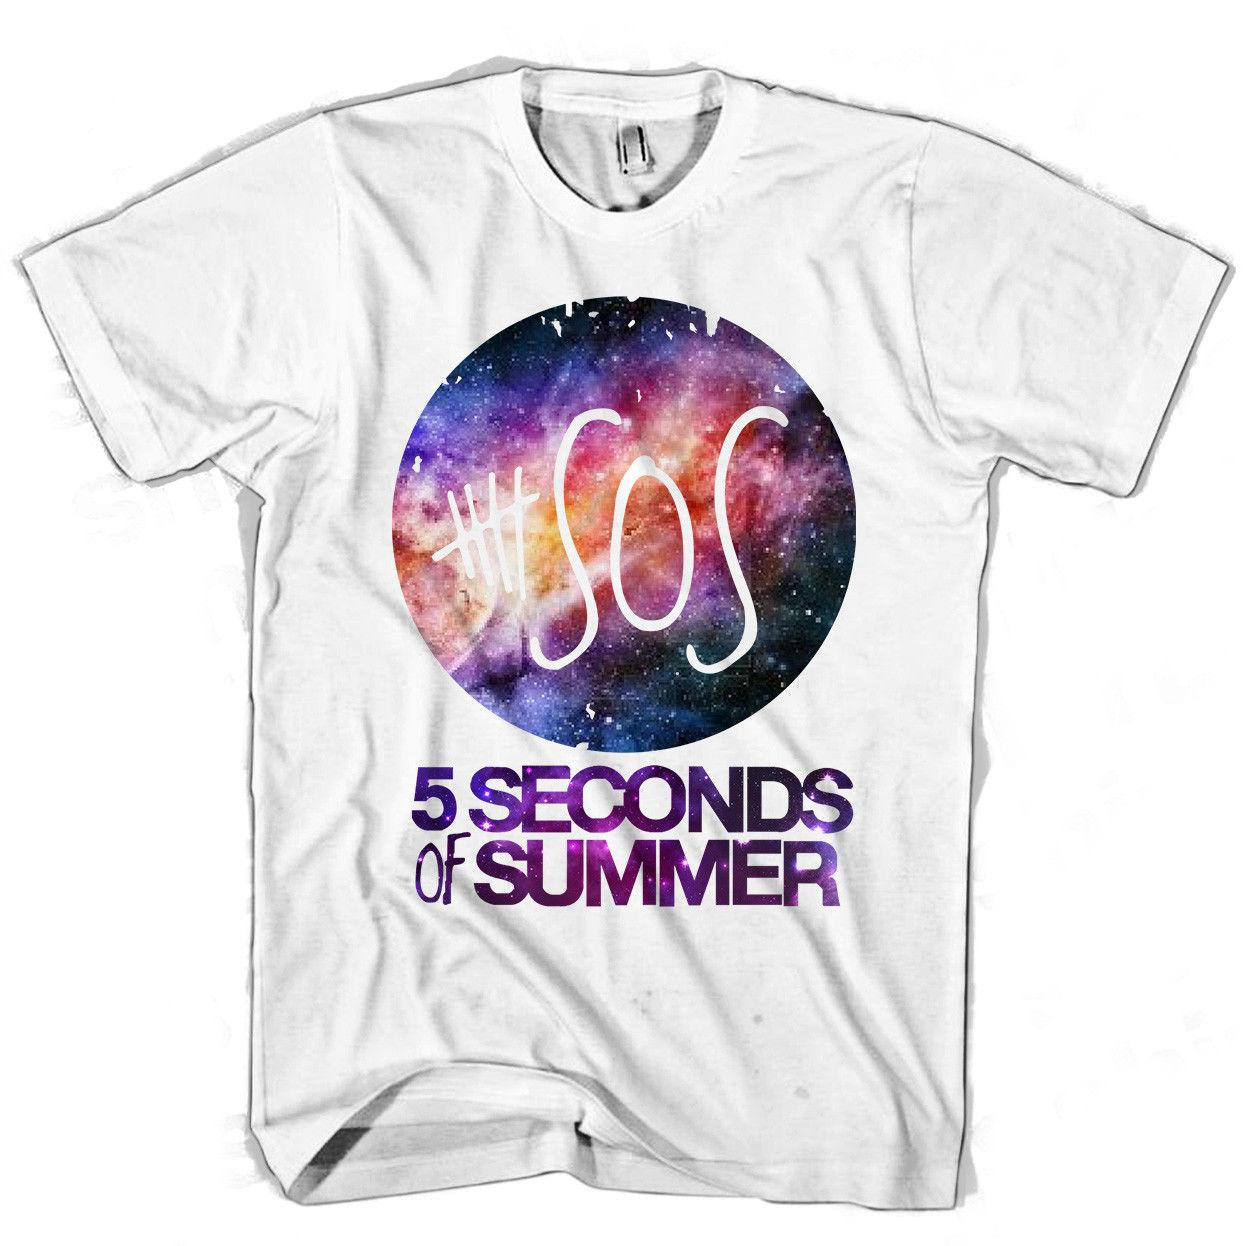 5 Seconds Of Summer Galaxy Purple Men's / Women's T Shirt Summer Short Sleeves Cotton T-Shirt Fashion